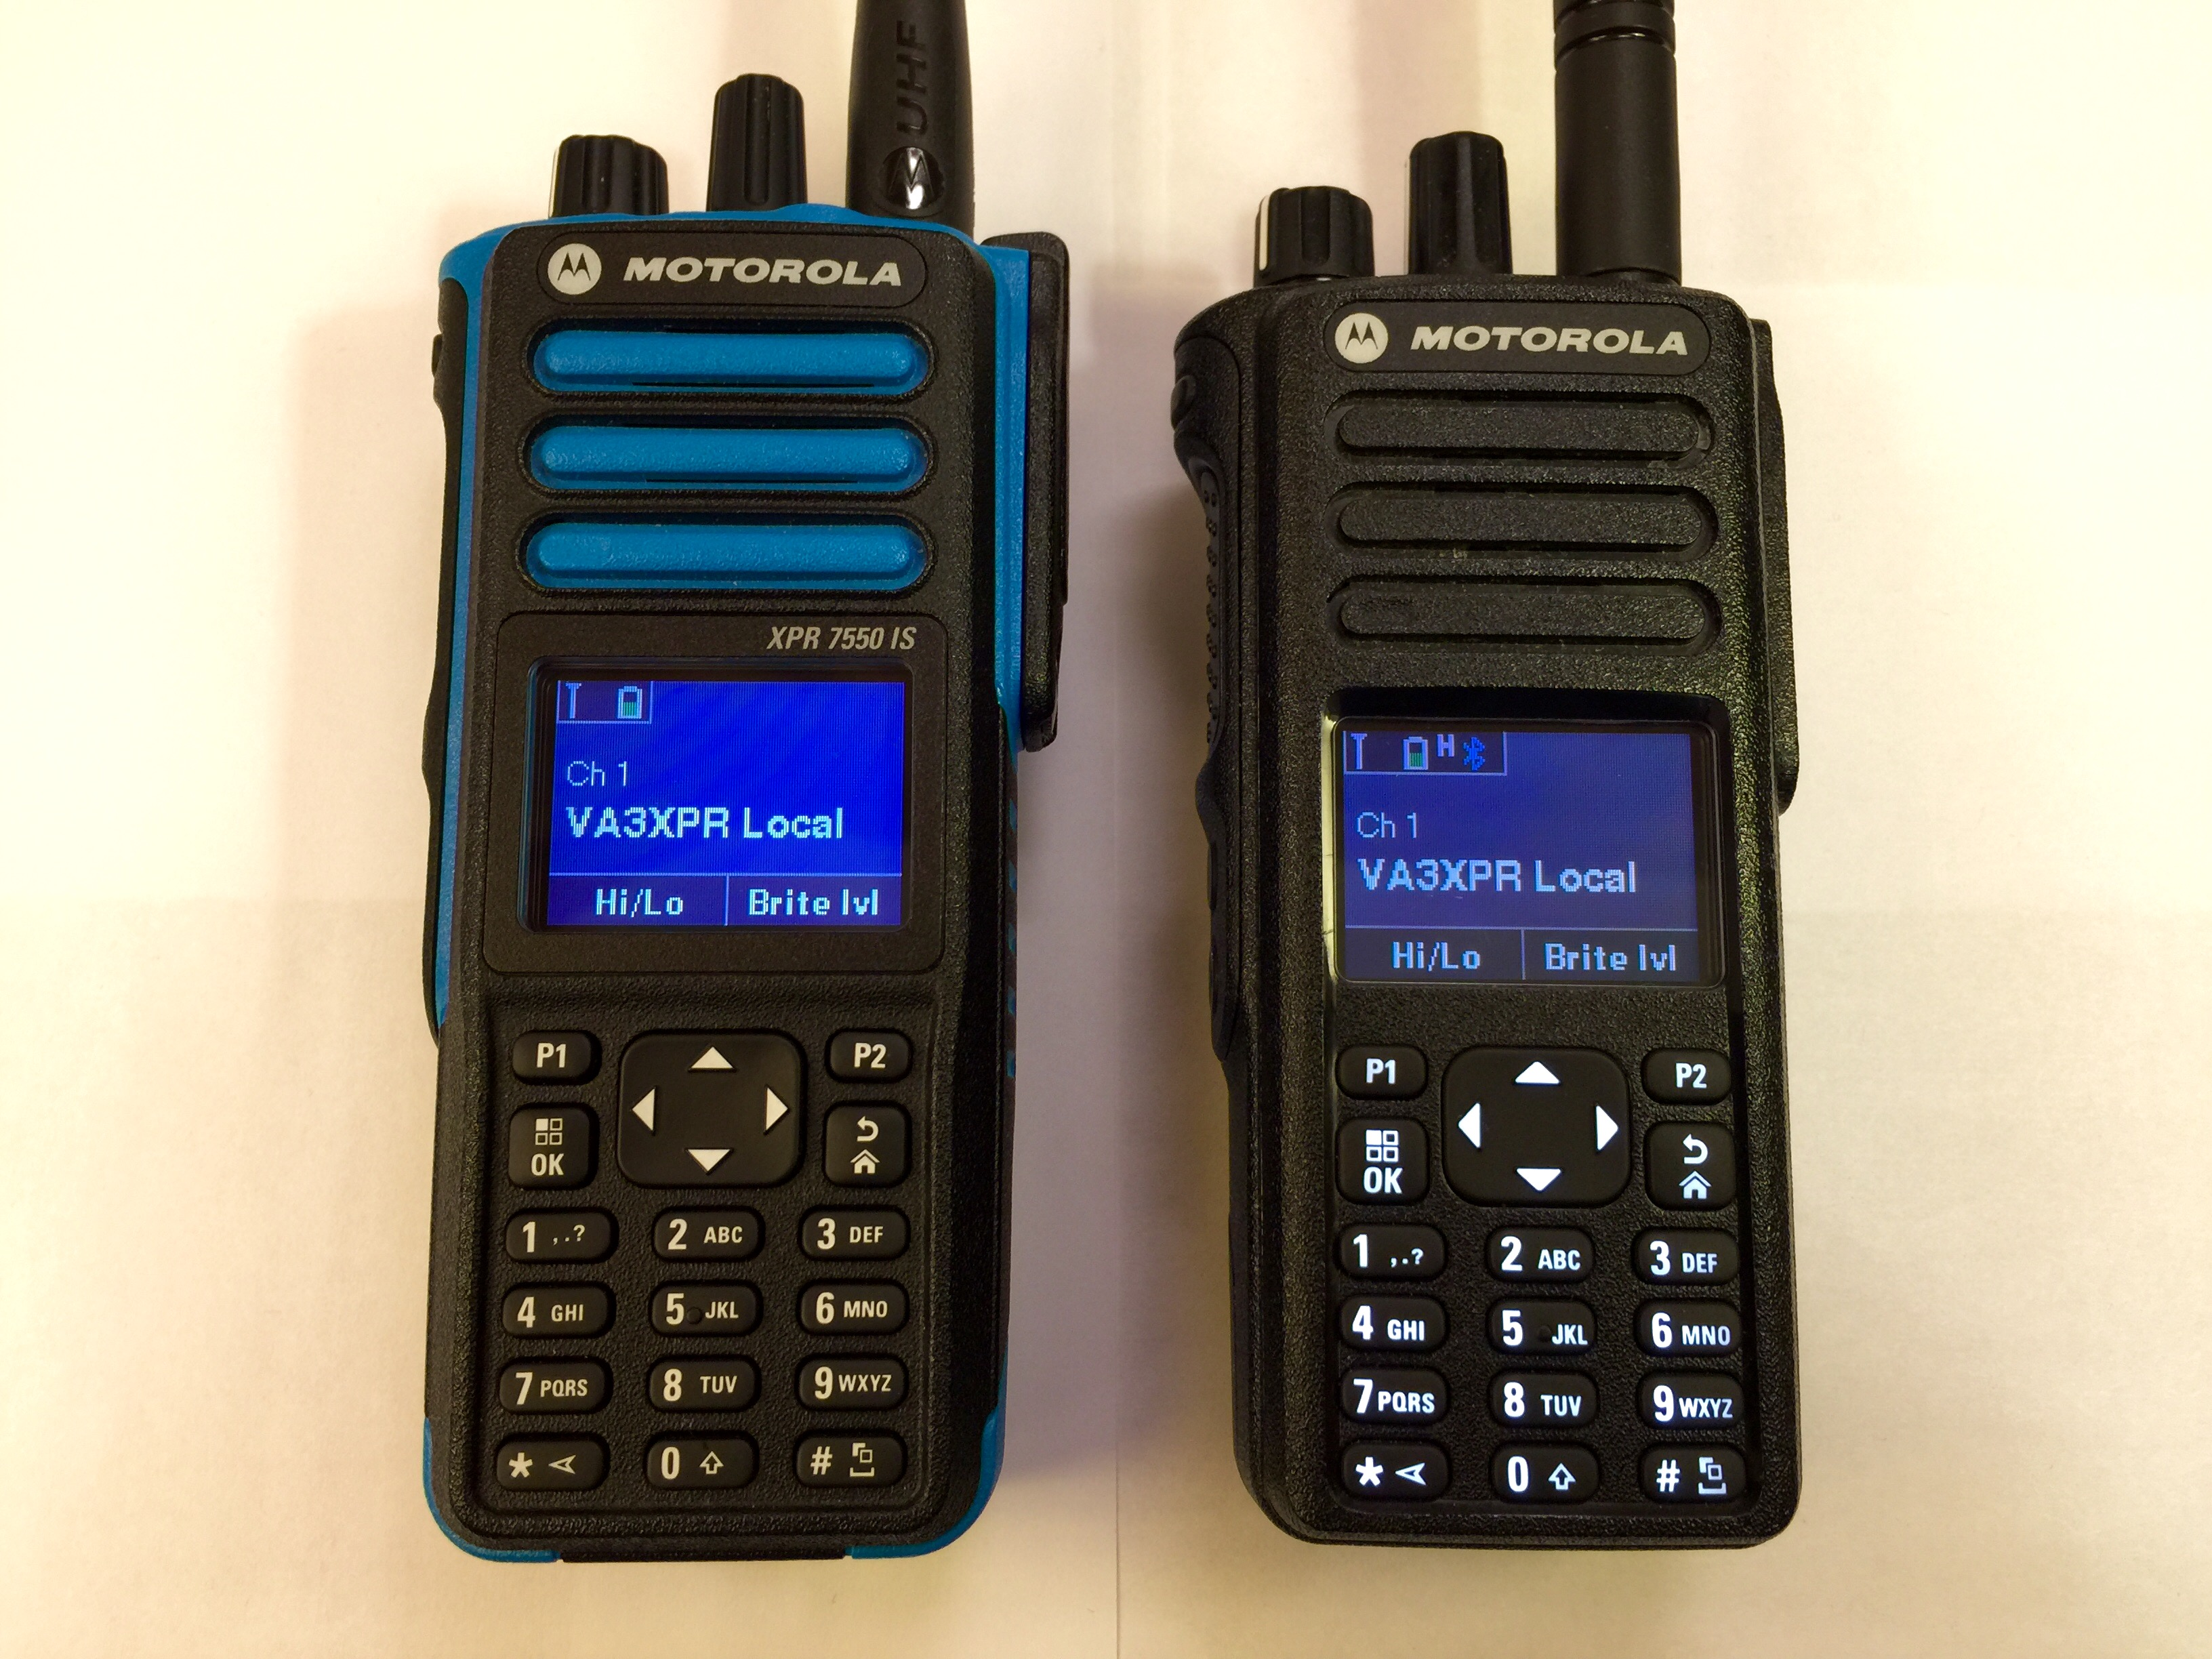 Motorola XPR Series portable